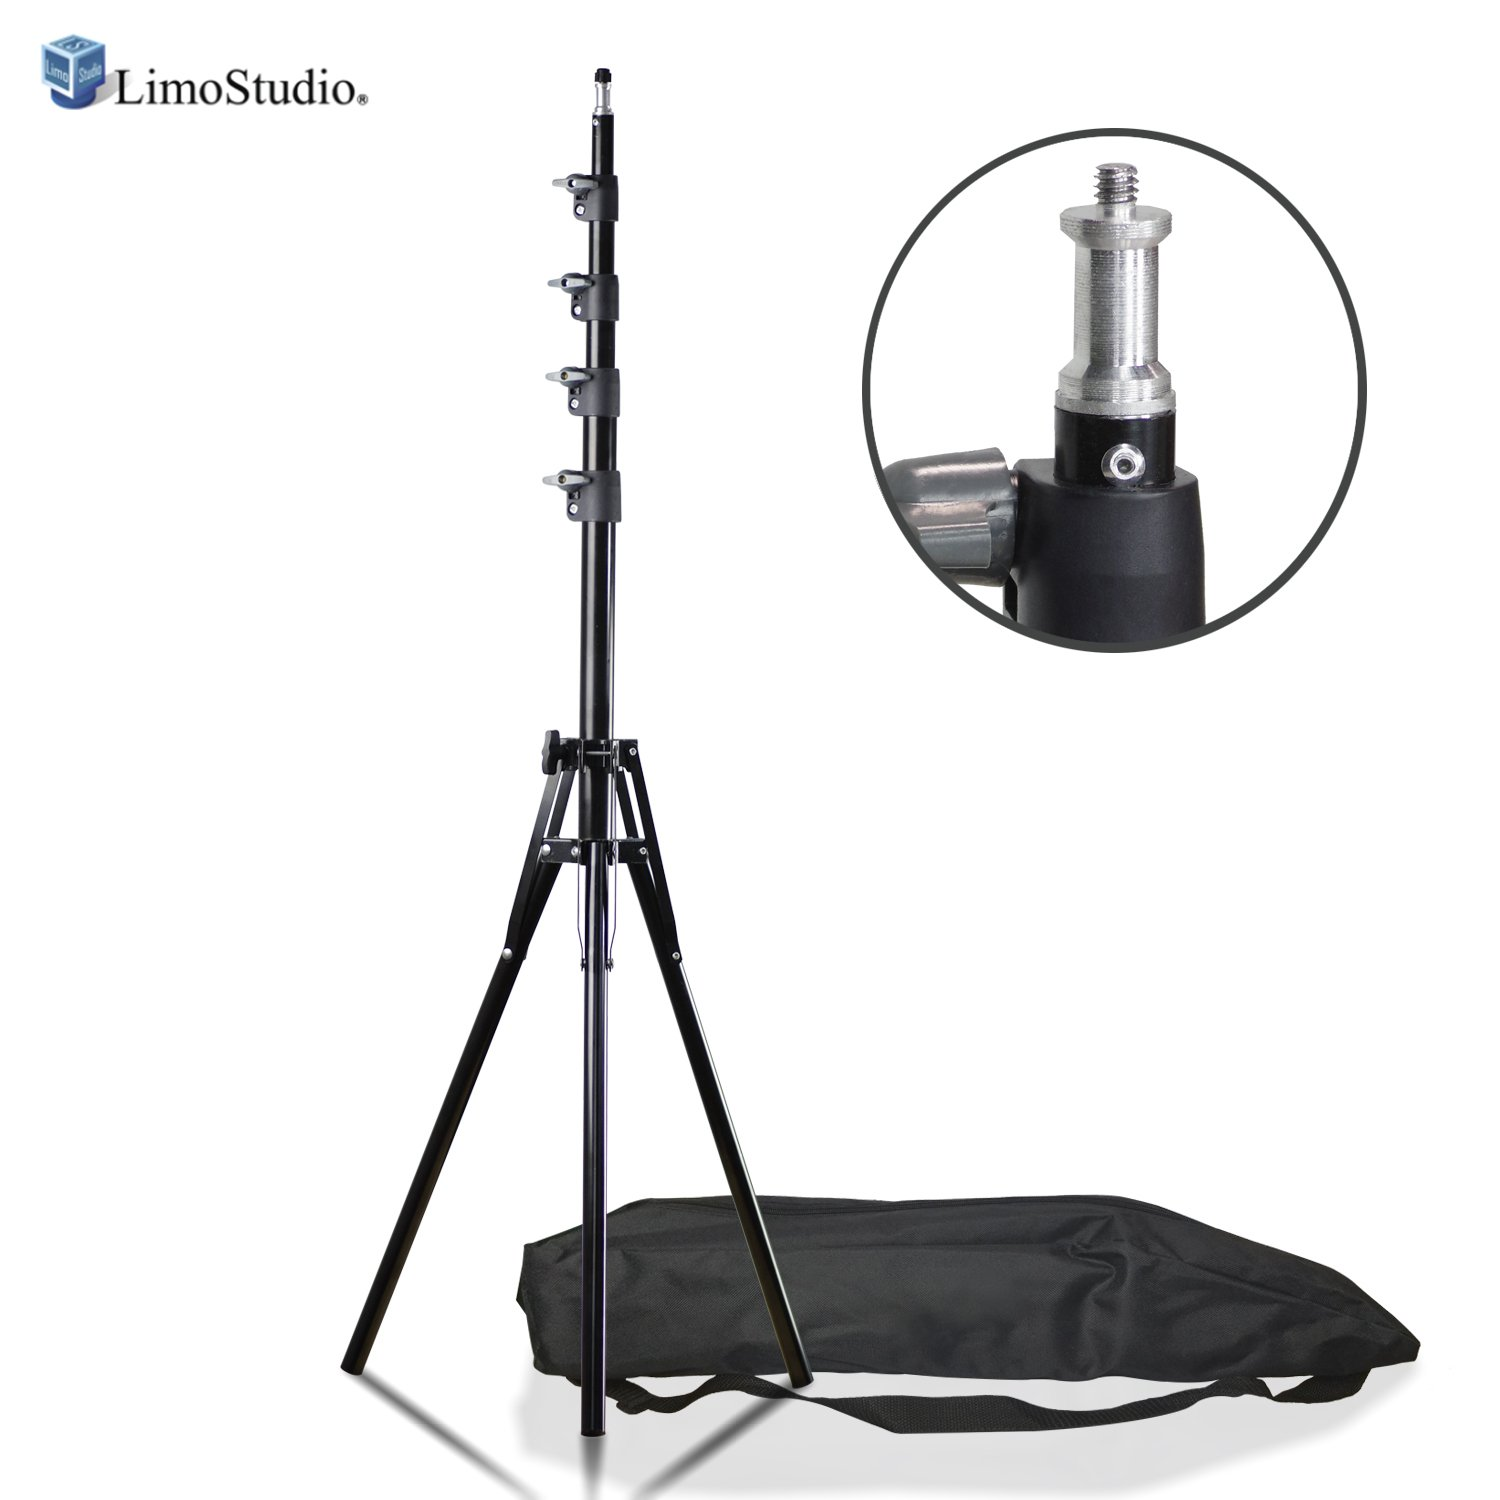 LimoStudio Adjustable Light Stand with 9ft Max Height and Carrying Bag for Photo Video Studio AGG2697